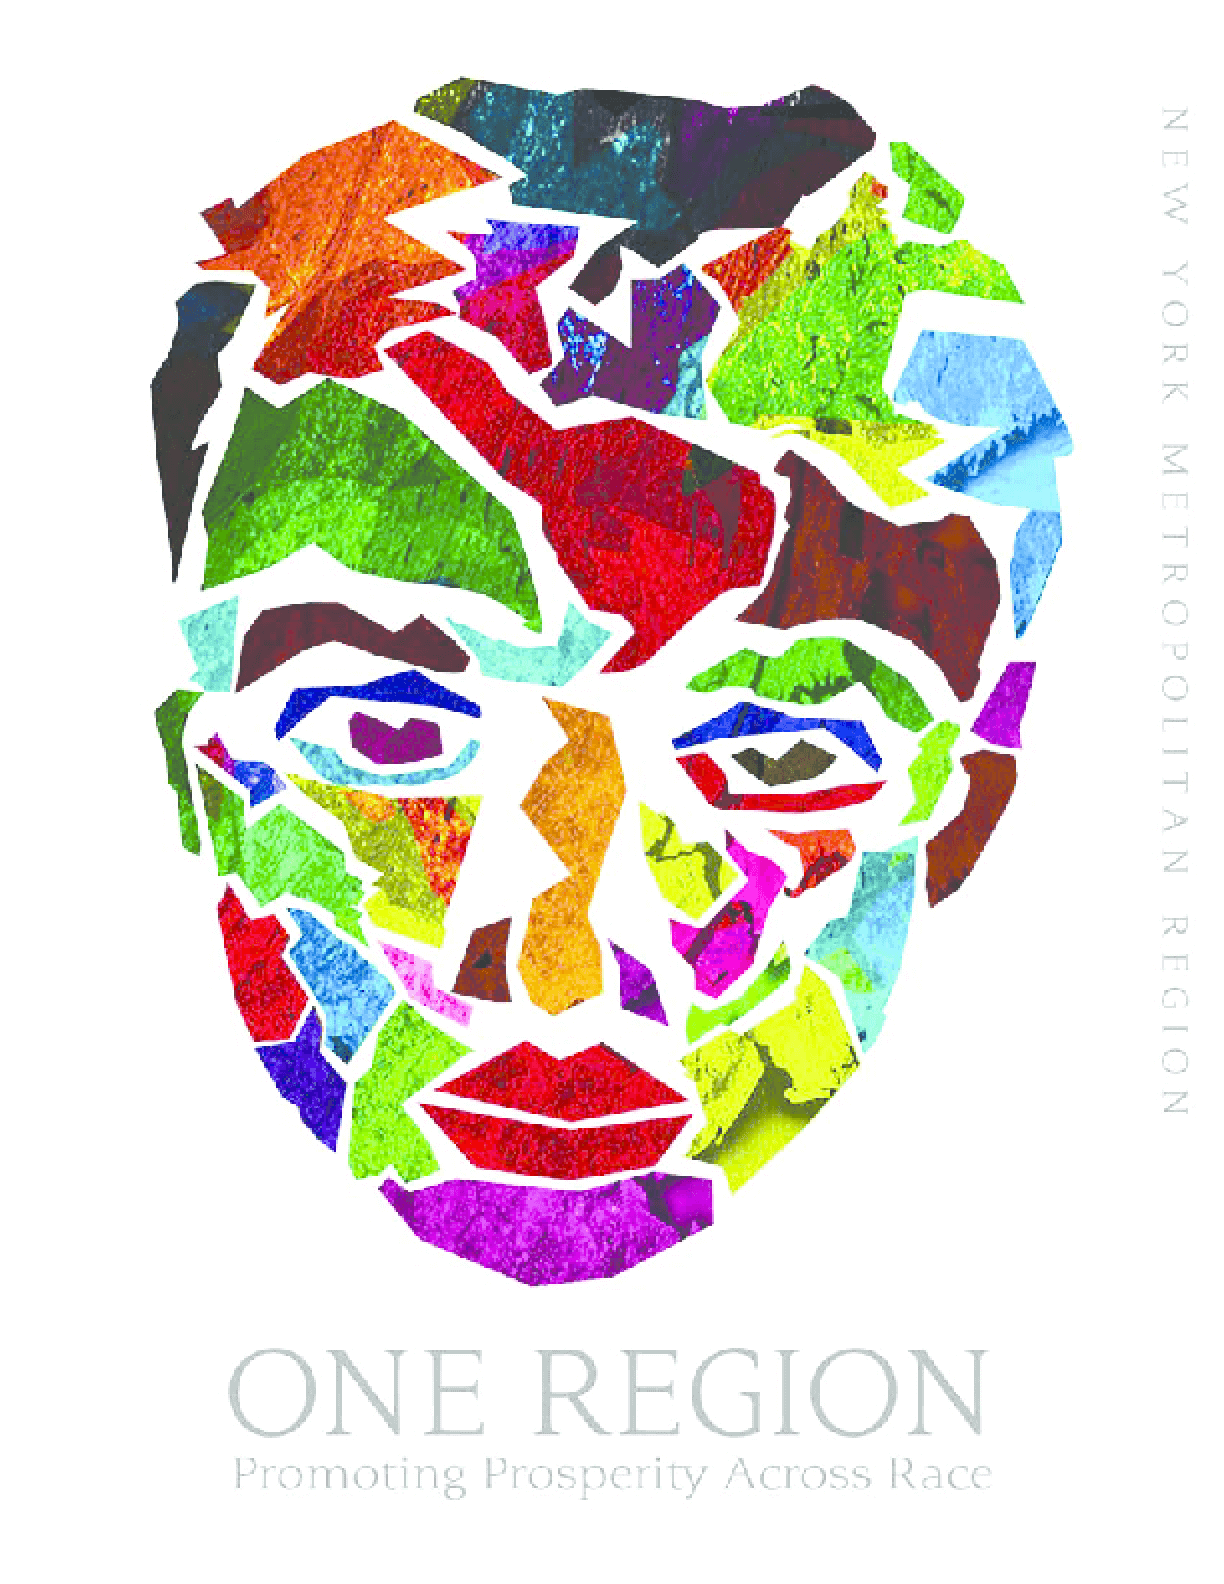 One Region: Promoting Prosperity Across Race